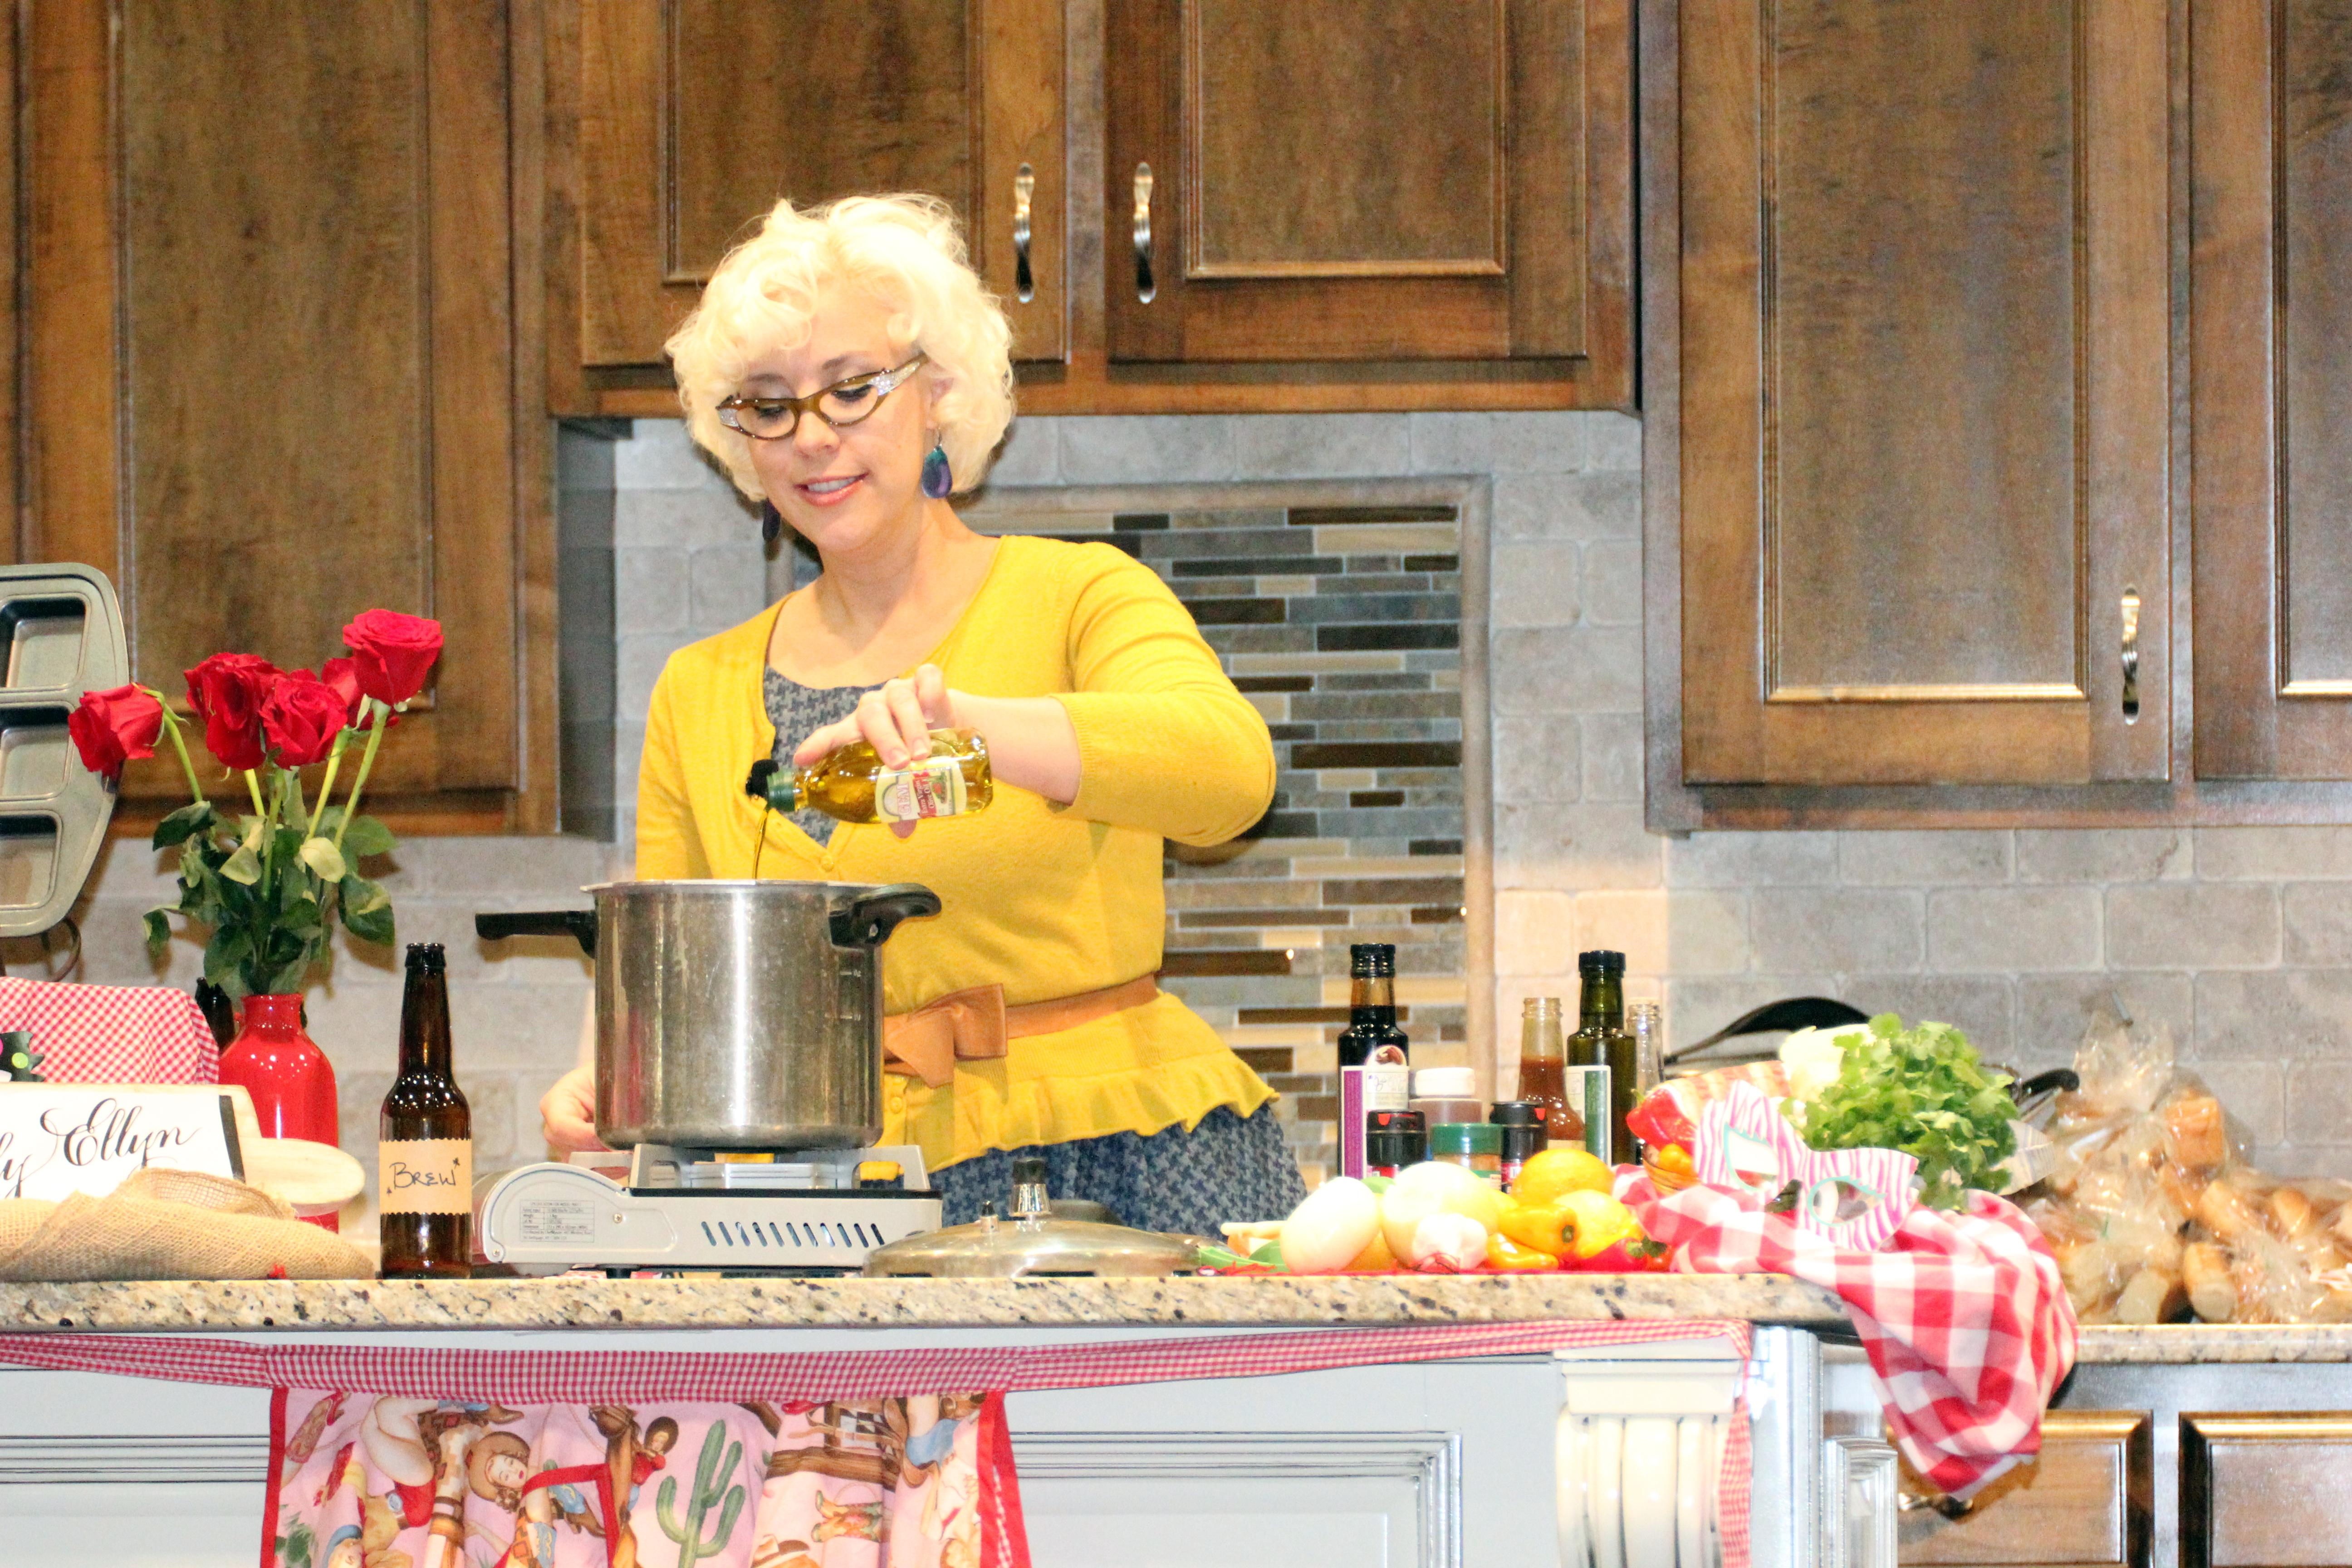 Emily Ellyn Cooking Up A Storm At The Birmingham Home U0026 Garden Show 2014.